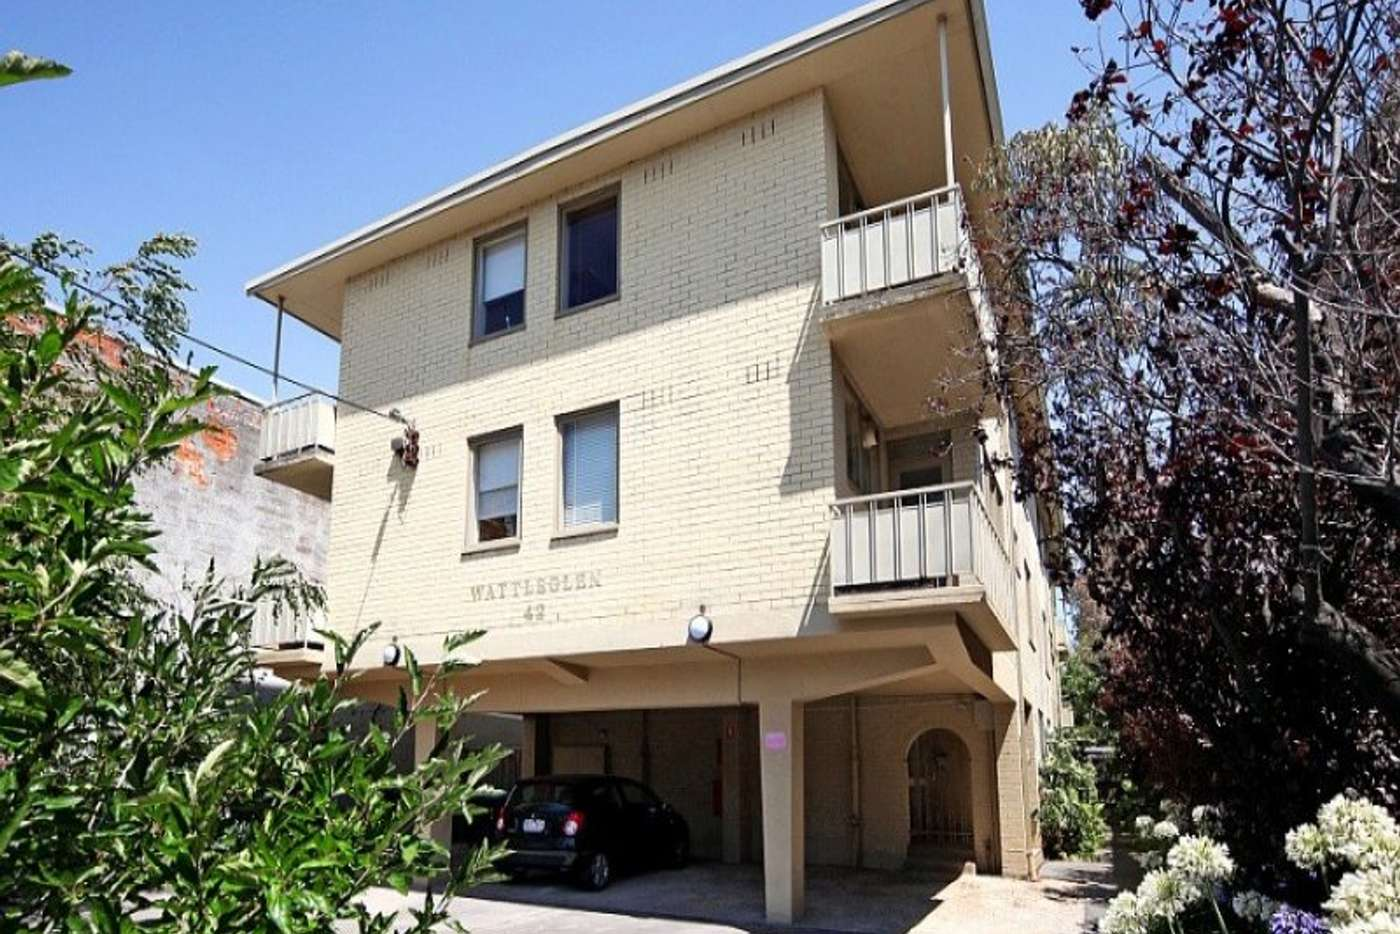 Main view of Homely apartment listing, 8/42 Wattletree Road, Armadale VIC 3143